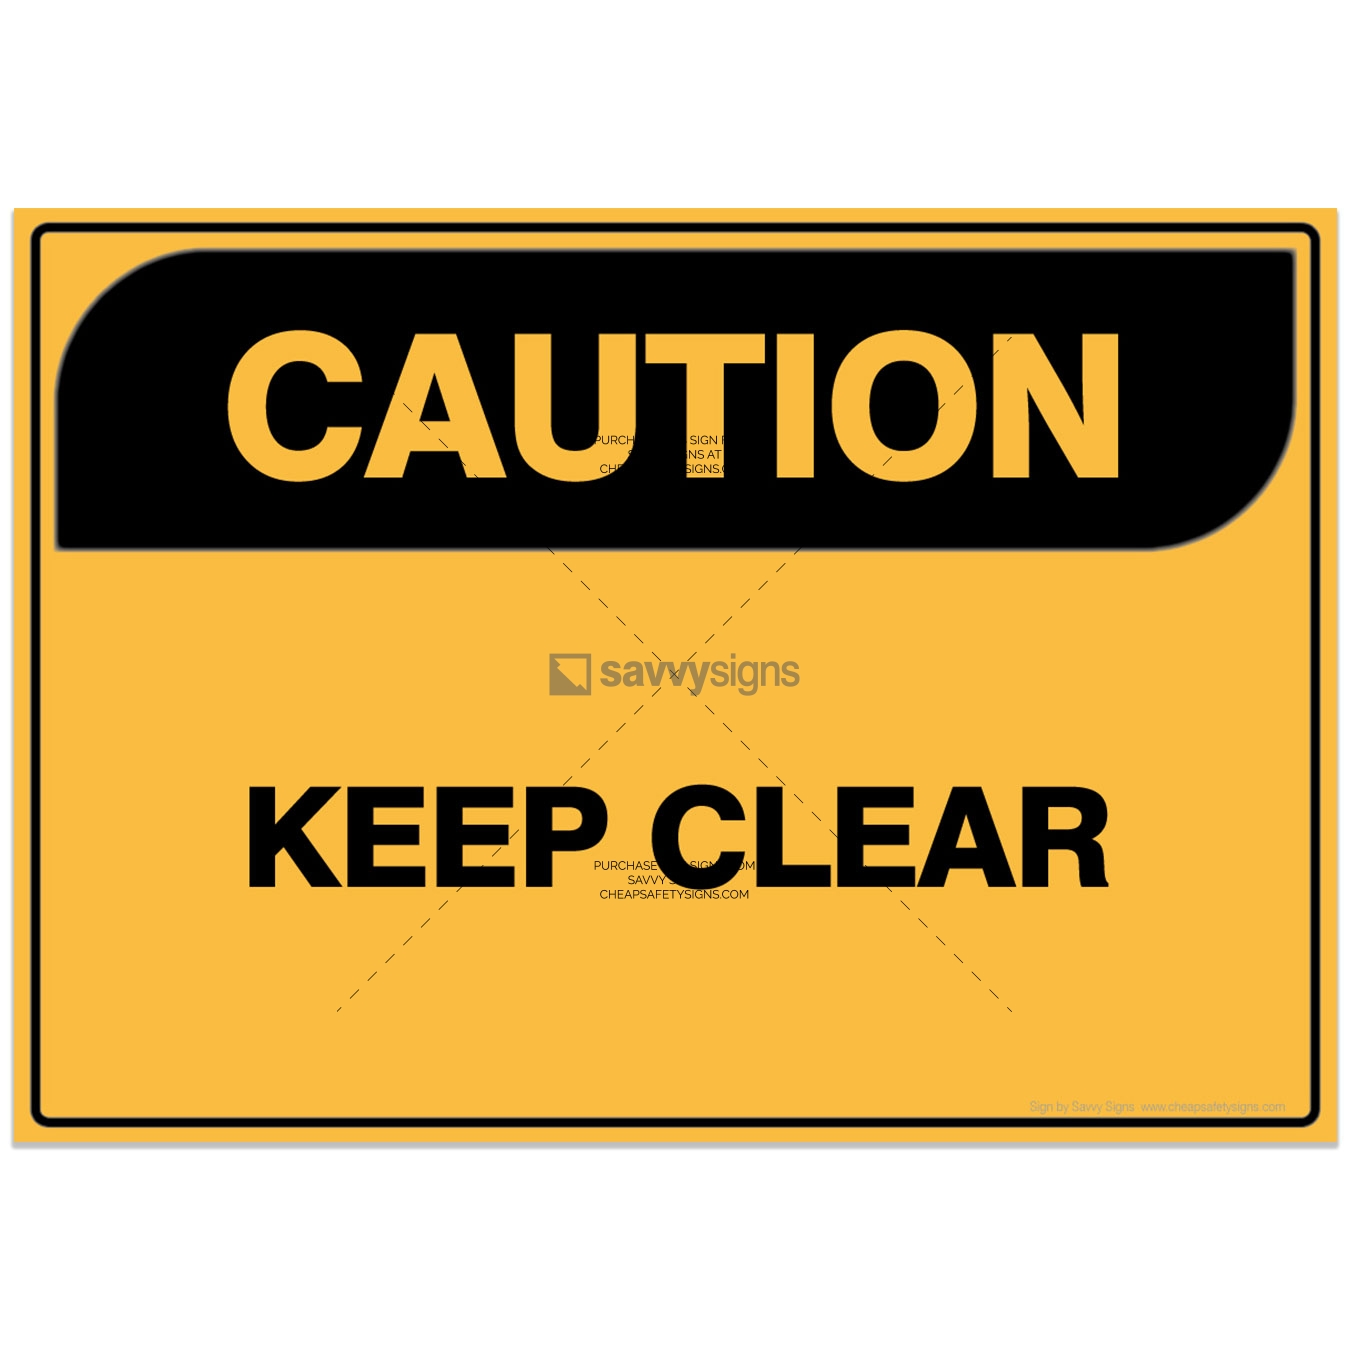 SSCAU3017-CAUTION-Workplace-Safety-Signs_Savvy-Signs_v4.1